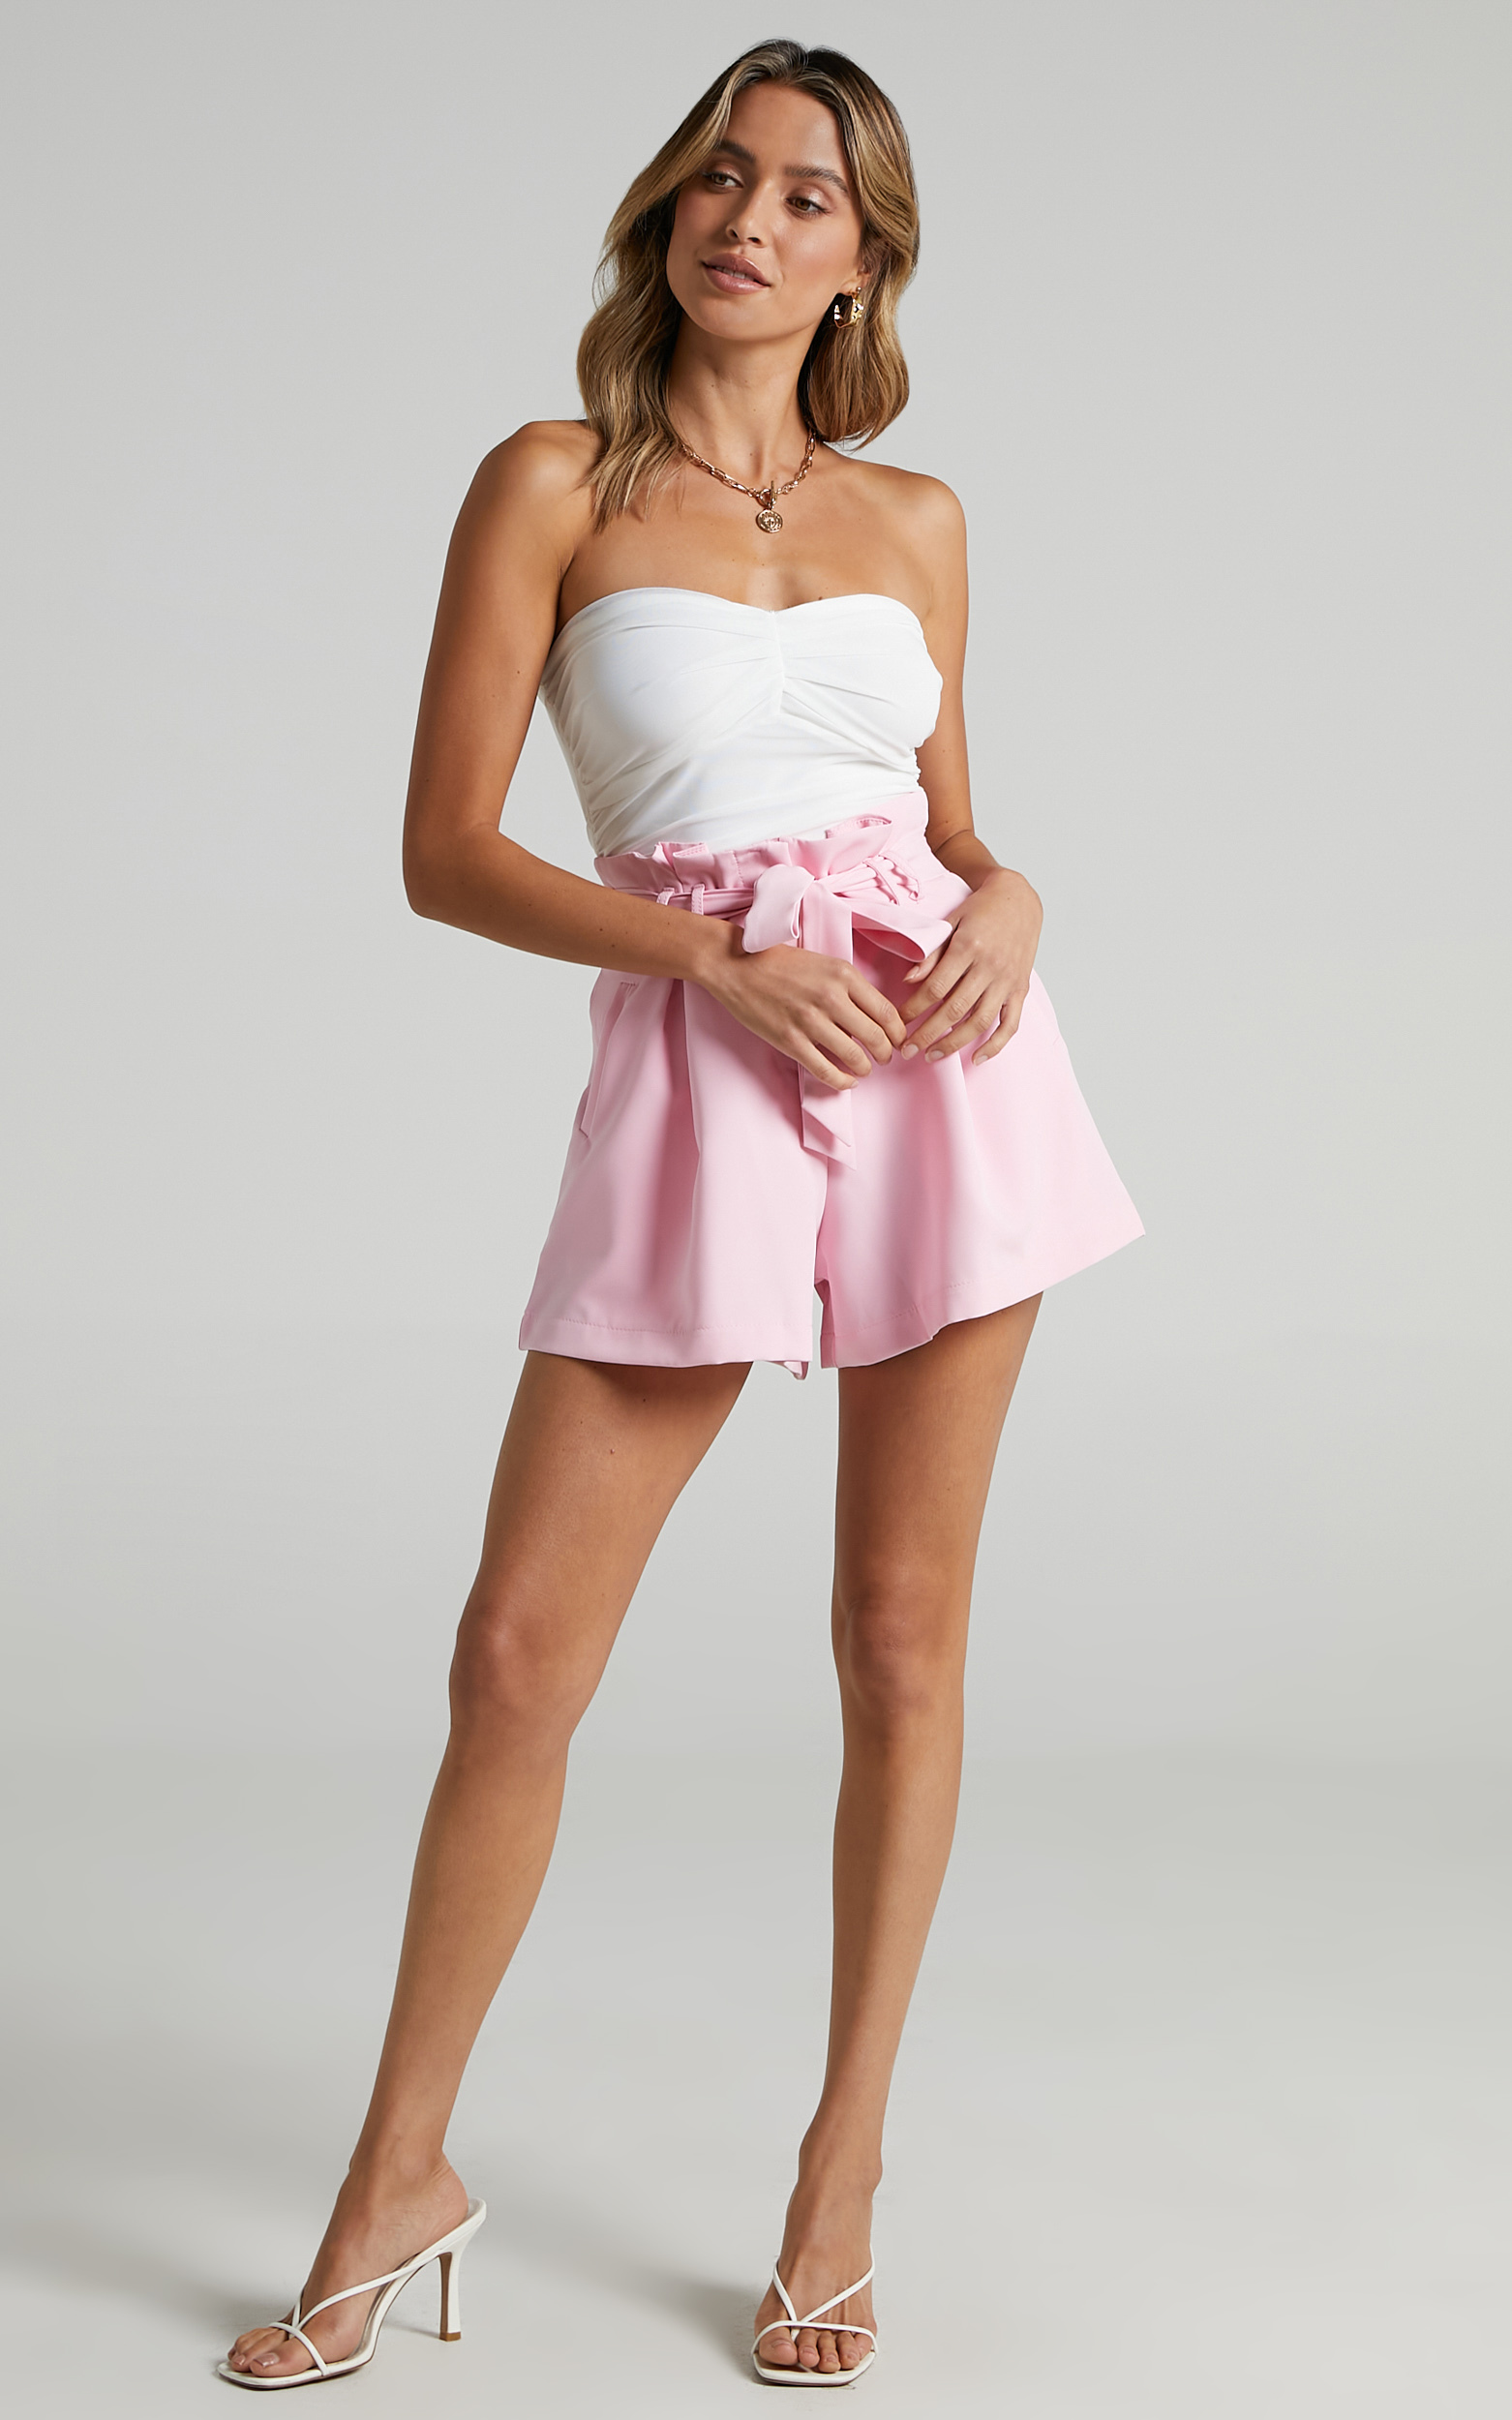 Amazona Shorts in Pink - 06, PNK1, hi-res image number null